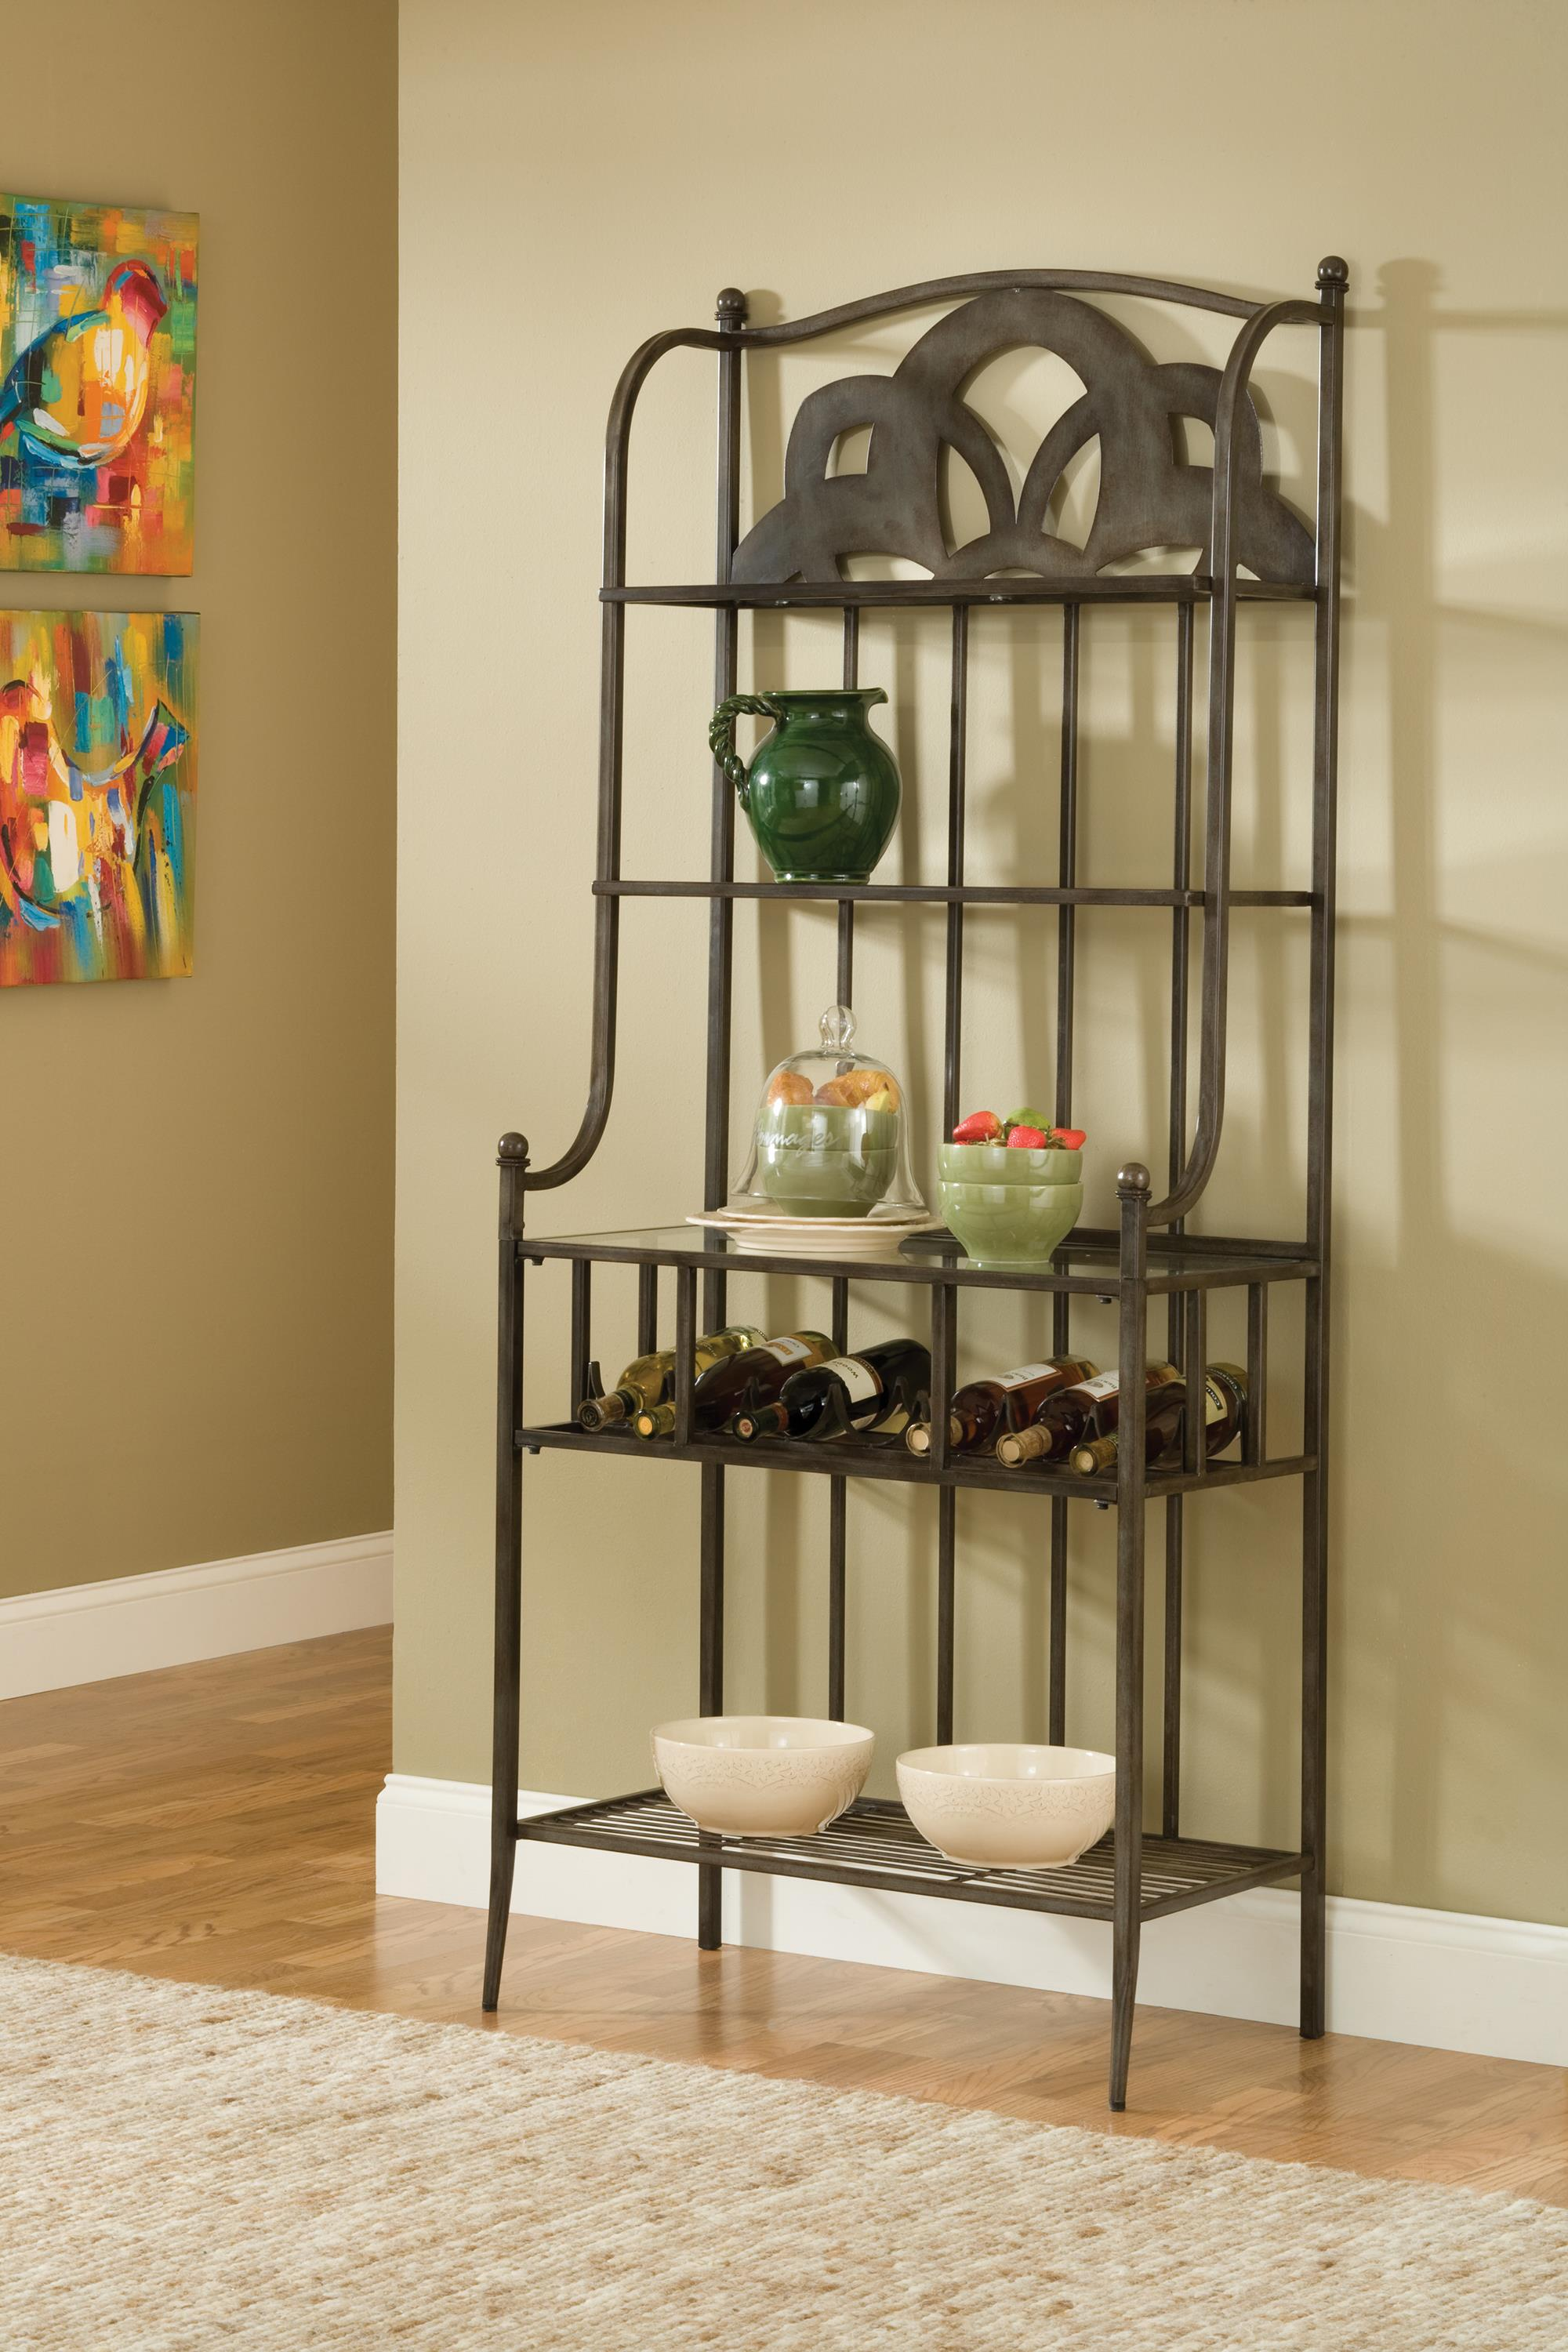 Hillsdale Marsala Baker's Rack (Small Center Design) - Item Number: 5435-850